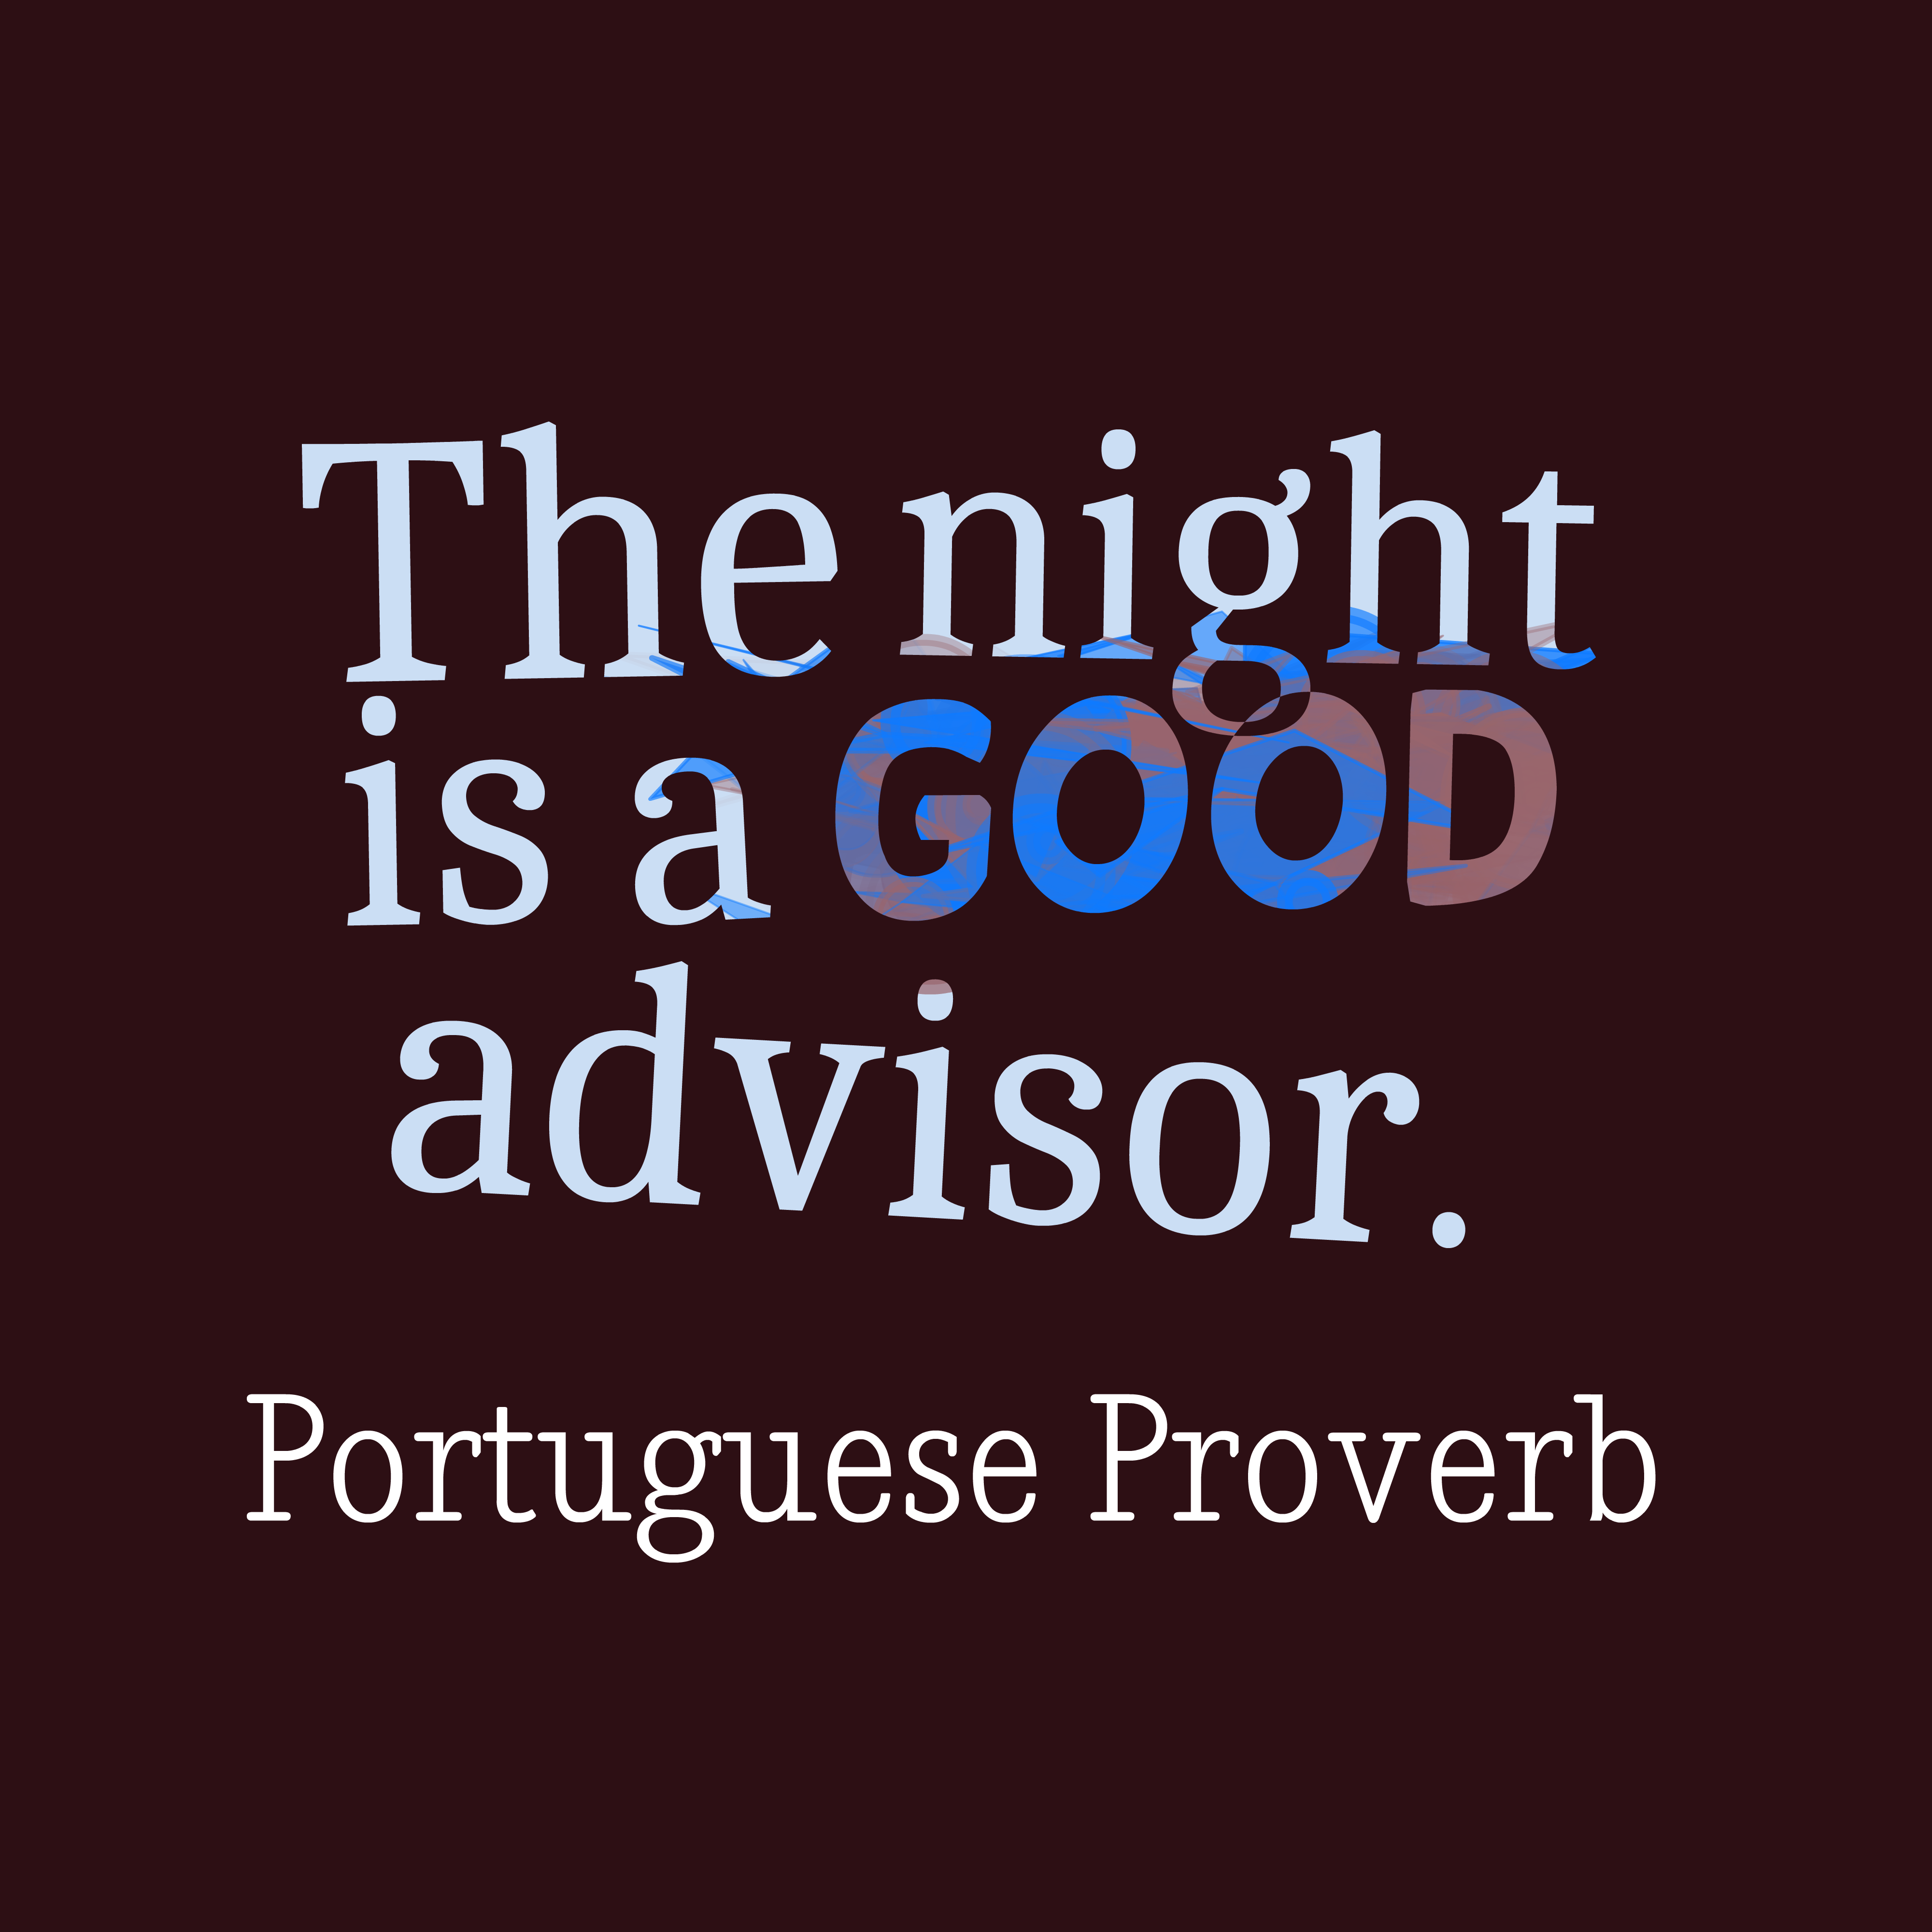 picture portuguese proverb about thinking quotescover